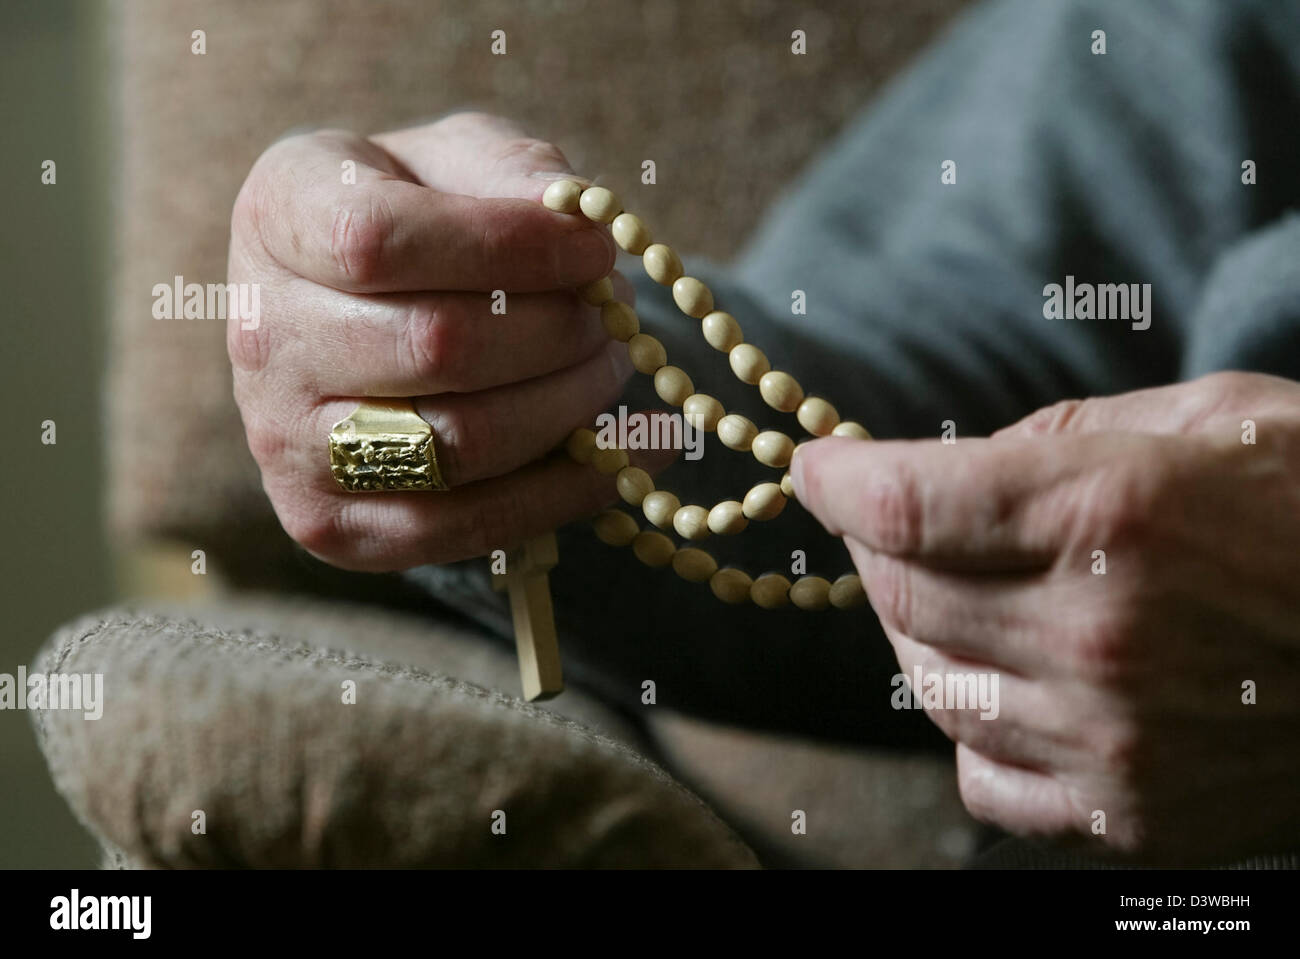 The hands of Cardinal Keith O'Brien, the most senior Roman Catholic cleric in Scotland, holding rosary beads - Stock Image